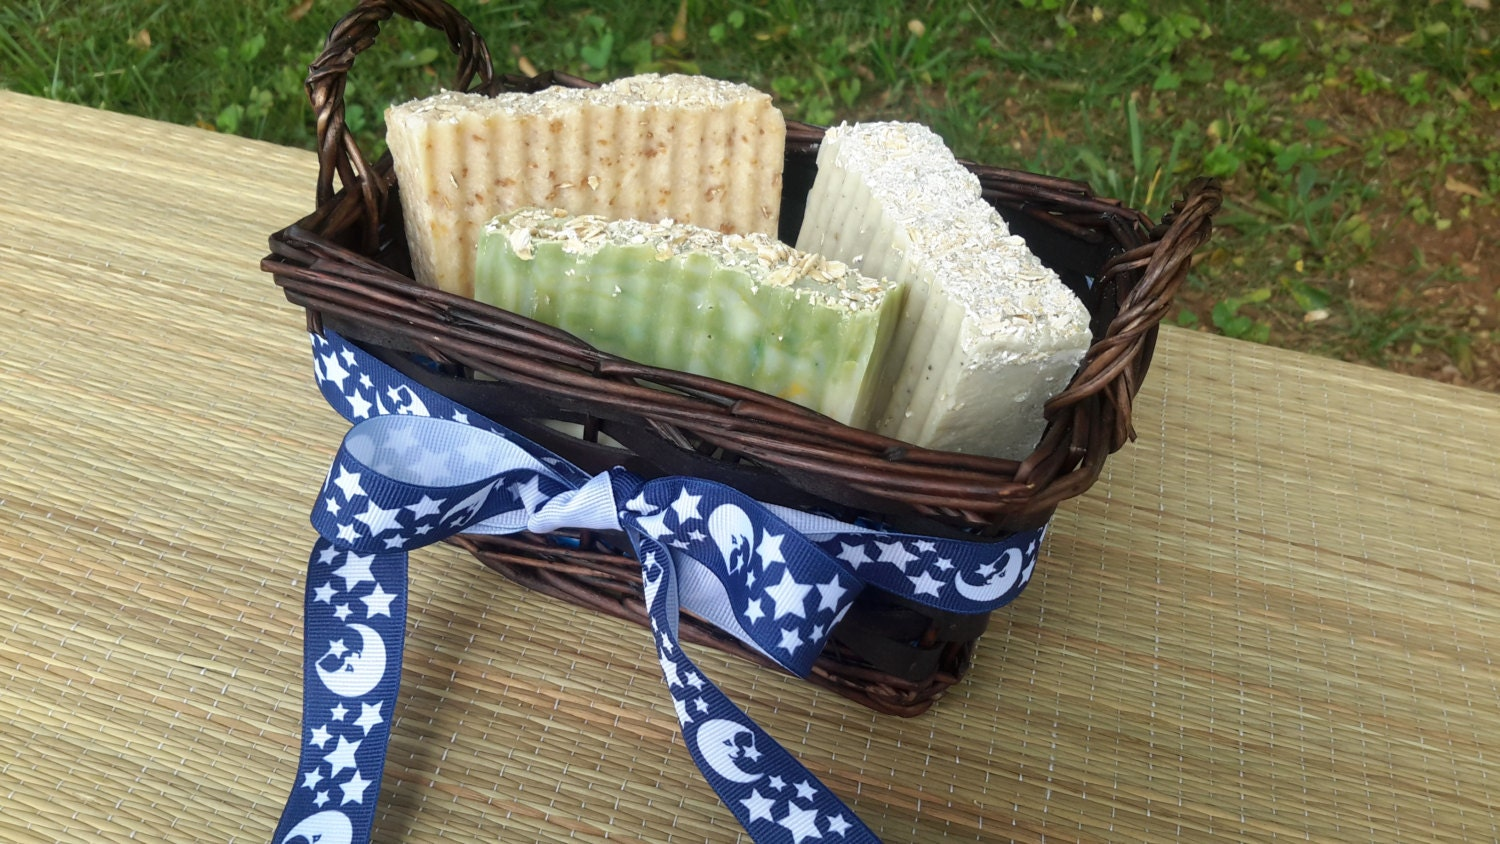 Handmade Soap Baskets : Handmade soap basket gift by georgiamadesoaps on etsy